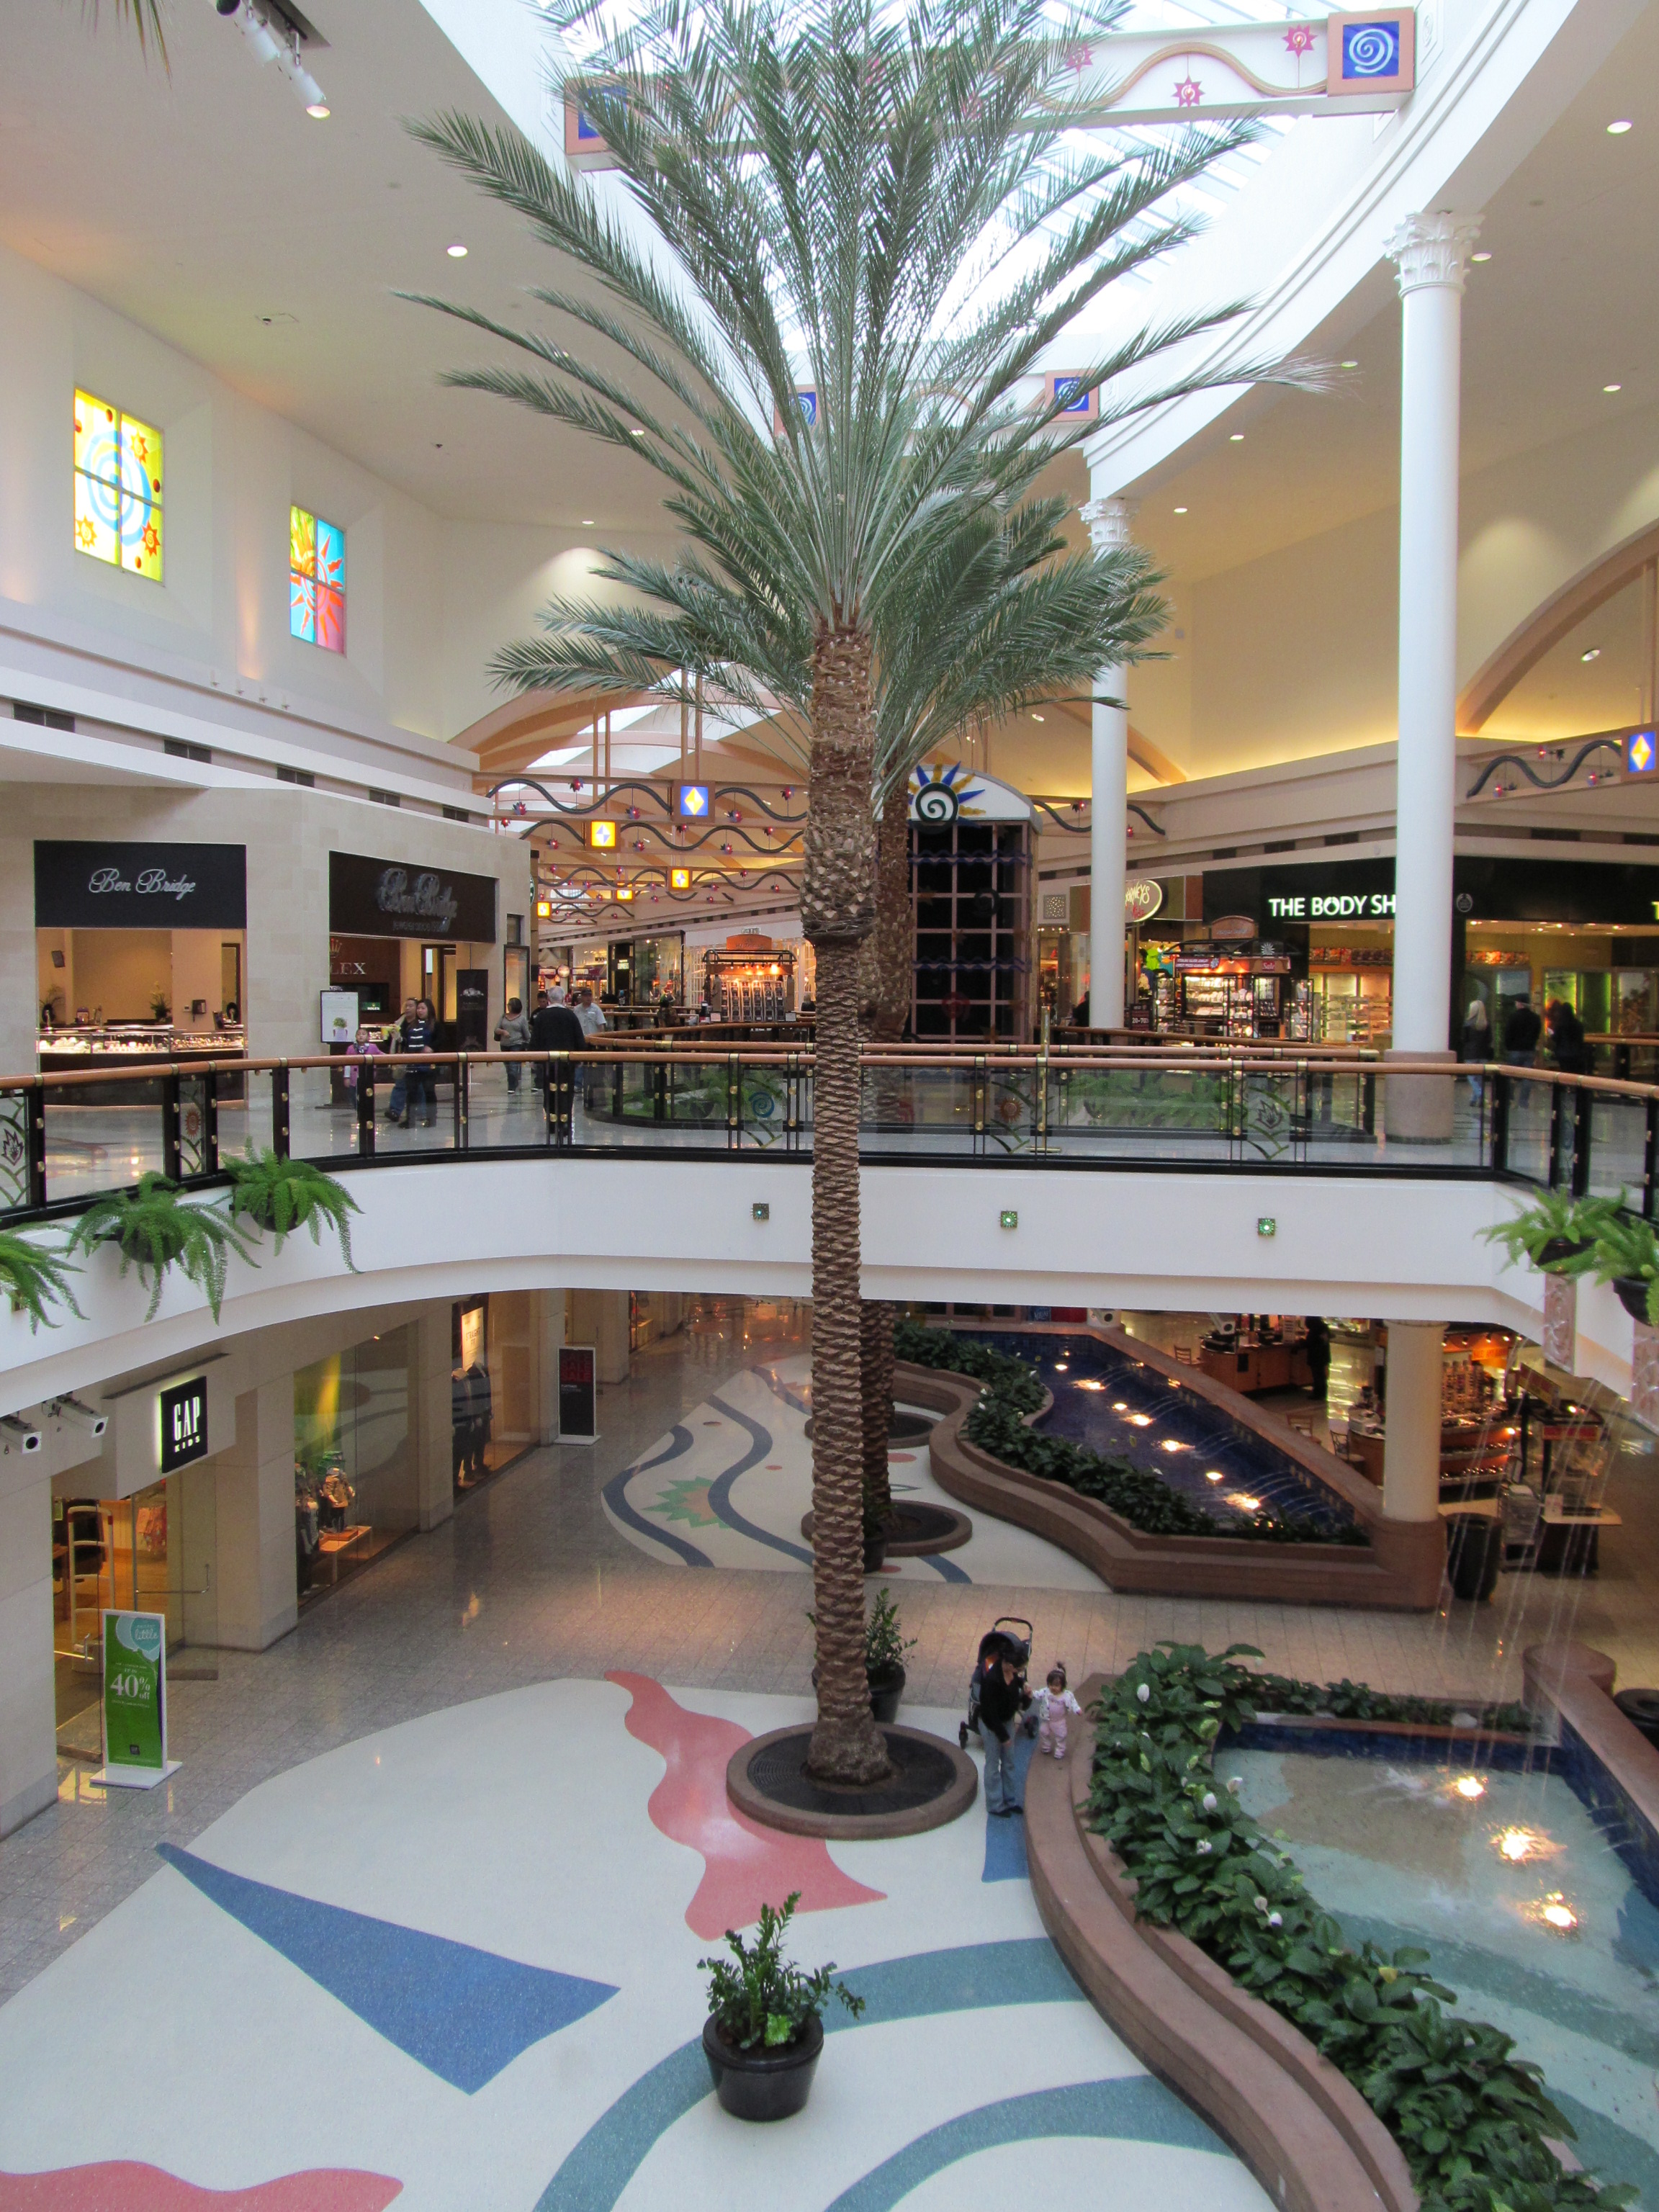 View the mall directory and map at Fashion Show to find your favorite stores. Fashion Show in Las Vegas, NV is the ultimate destination for shopping.